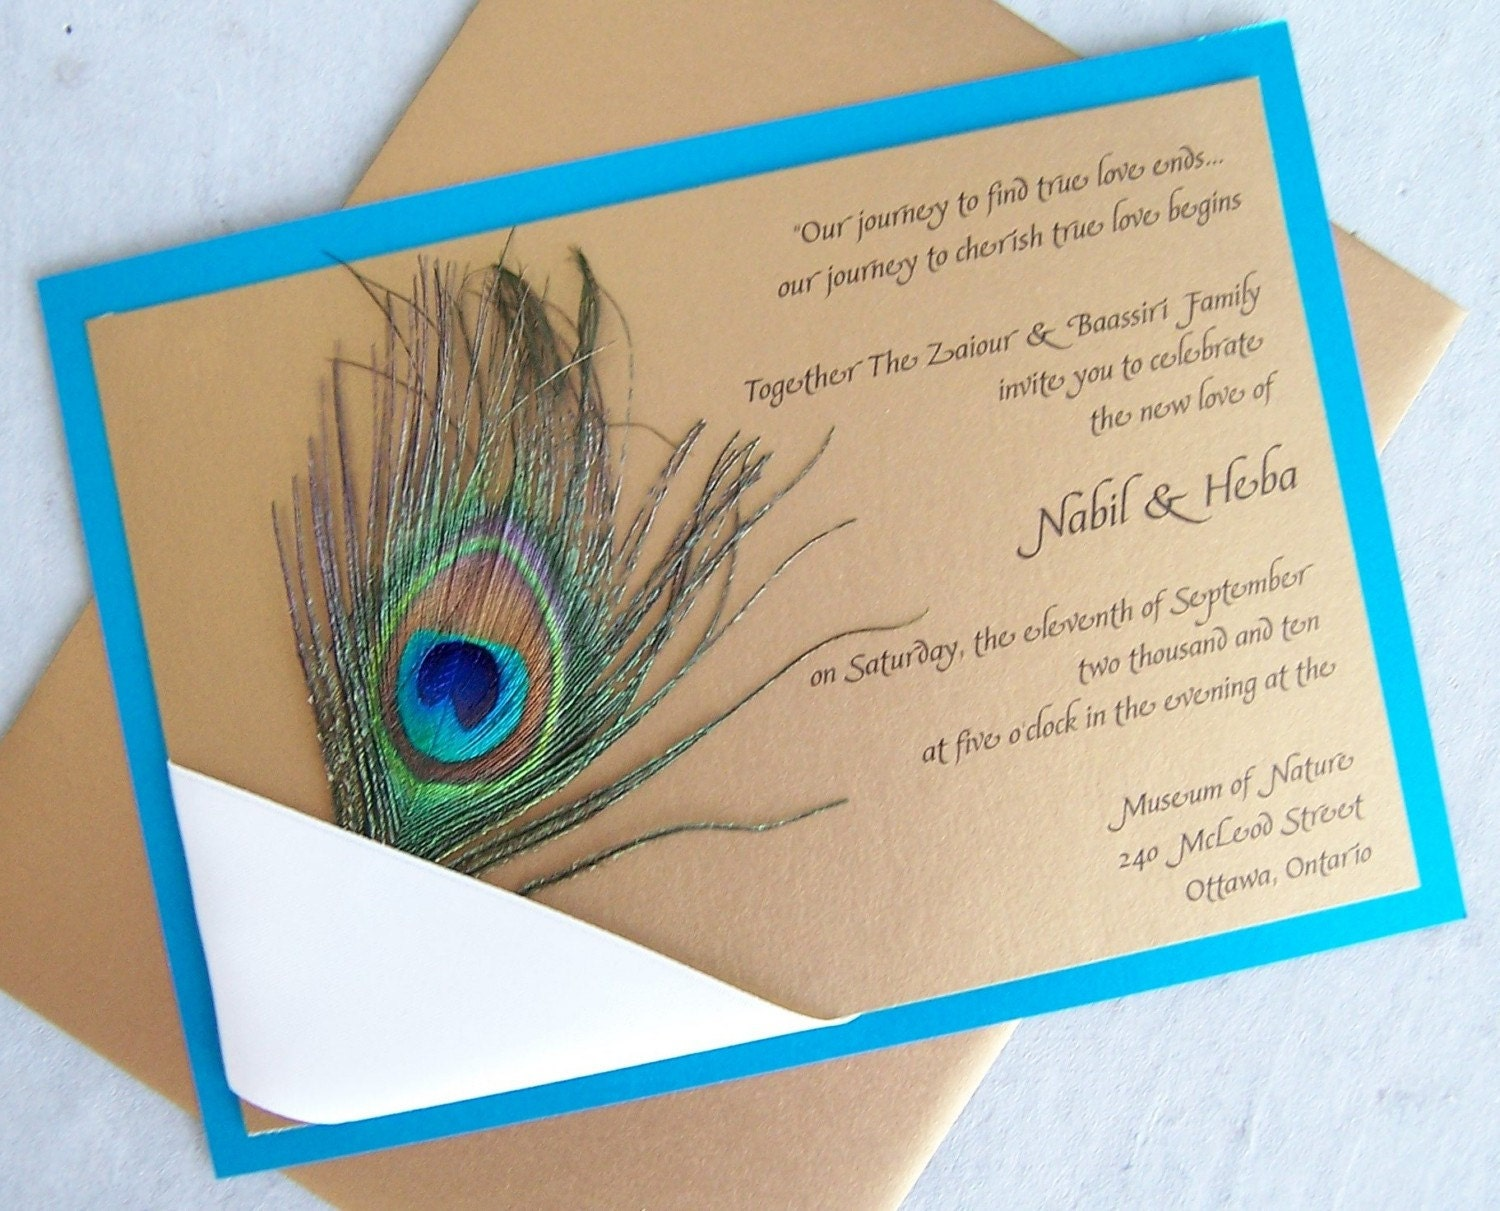 Peacock Wedding Invitation Gold Teal Aqua Ribbon Navy. Engineering Student Resume Template. Avery Labels Template 5163. Non Profit Budget Template Excel. Happy Birthday Customized